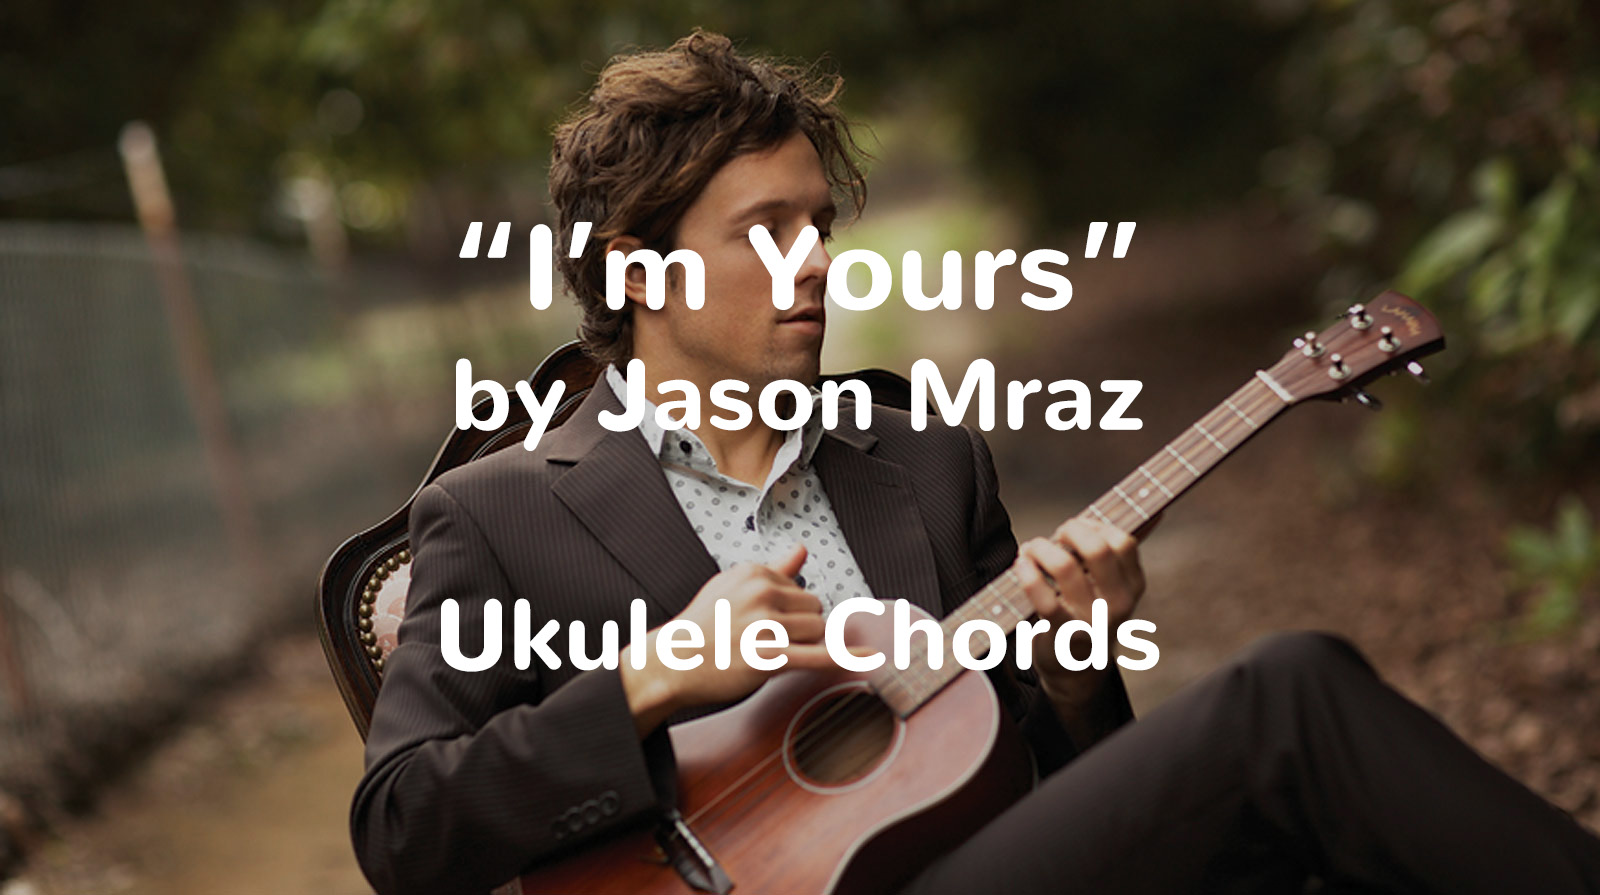 I'm Yours by Jason Mraz Ukulele Chords